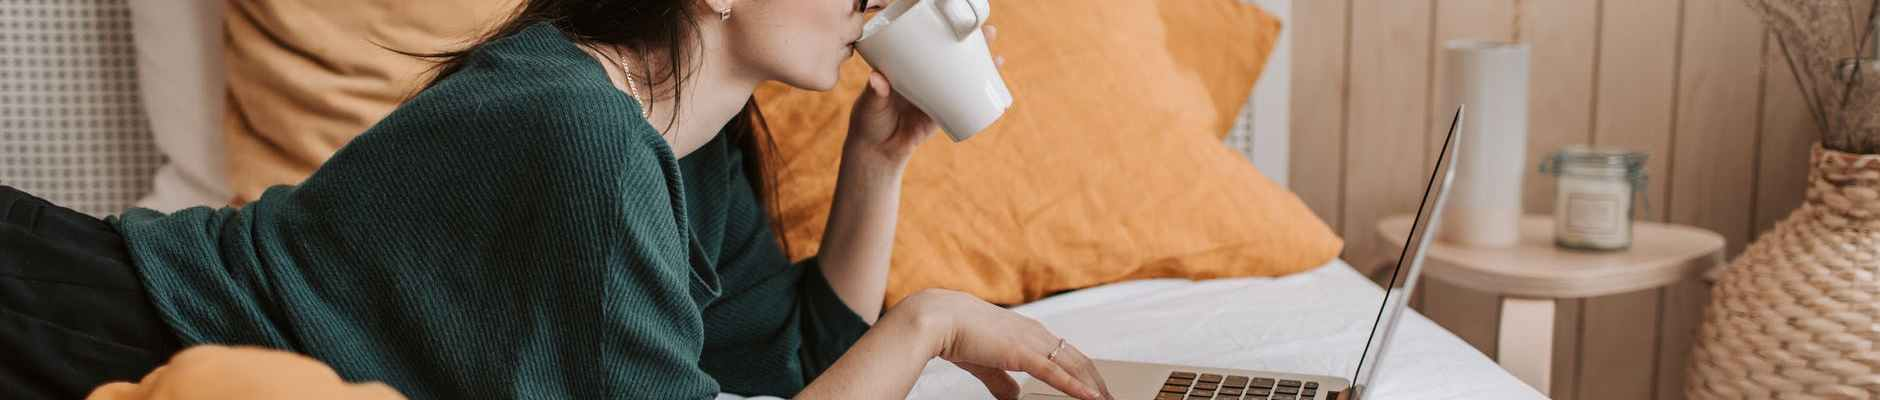 woman using laptop and drinking beverage in bed